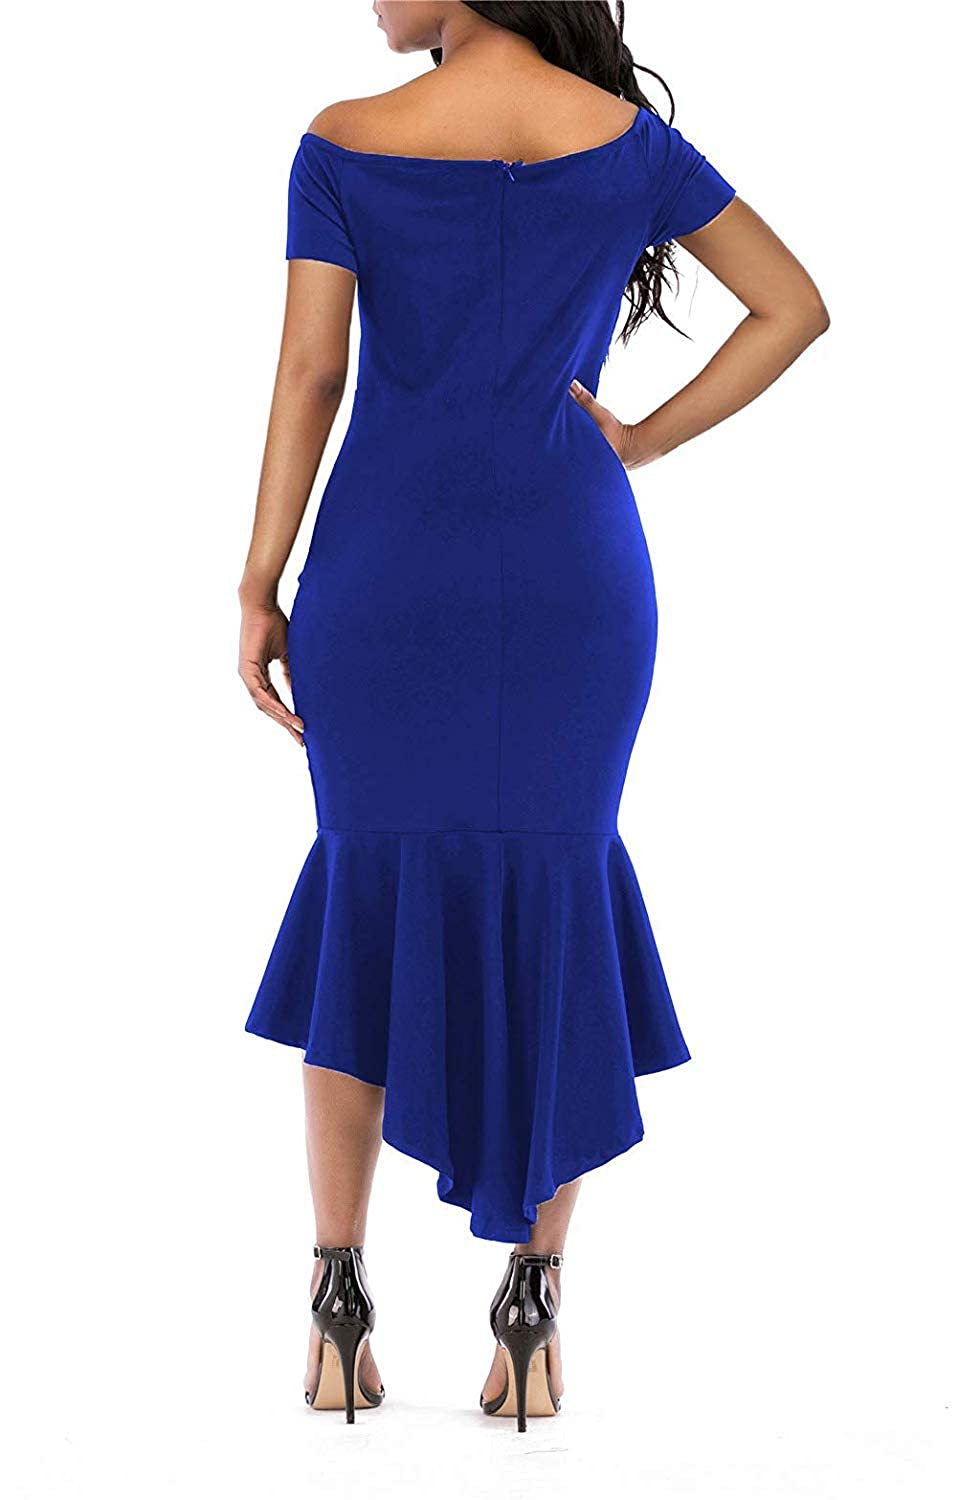 KISSMODA Womens Bodycon Dress Off The Shoulder Mermaid Evening Party Gown